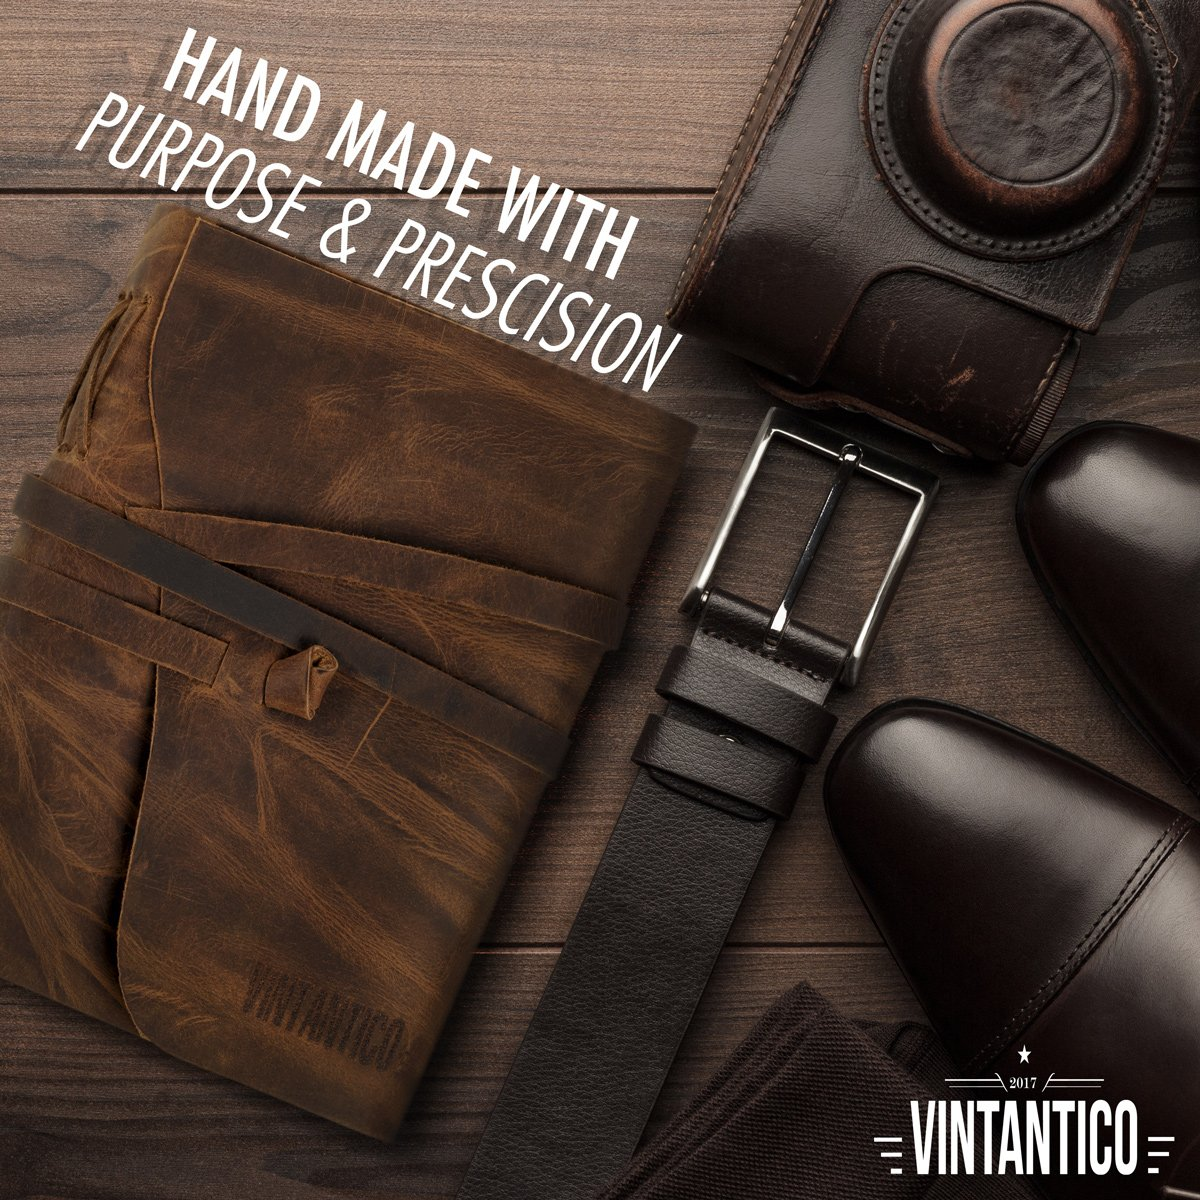 Vintantico Genuine Leather Journal with Writing Pen (Brown) Vintage, Bound, Handmade Cover Recycled Unlined Paper   Men's & Women's Personal Notepad   Incl. Bookmark, Gift Box by Vintantico (Image #7)